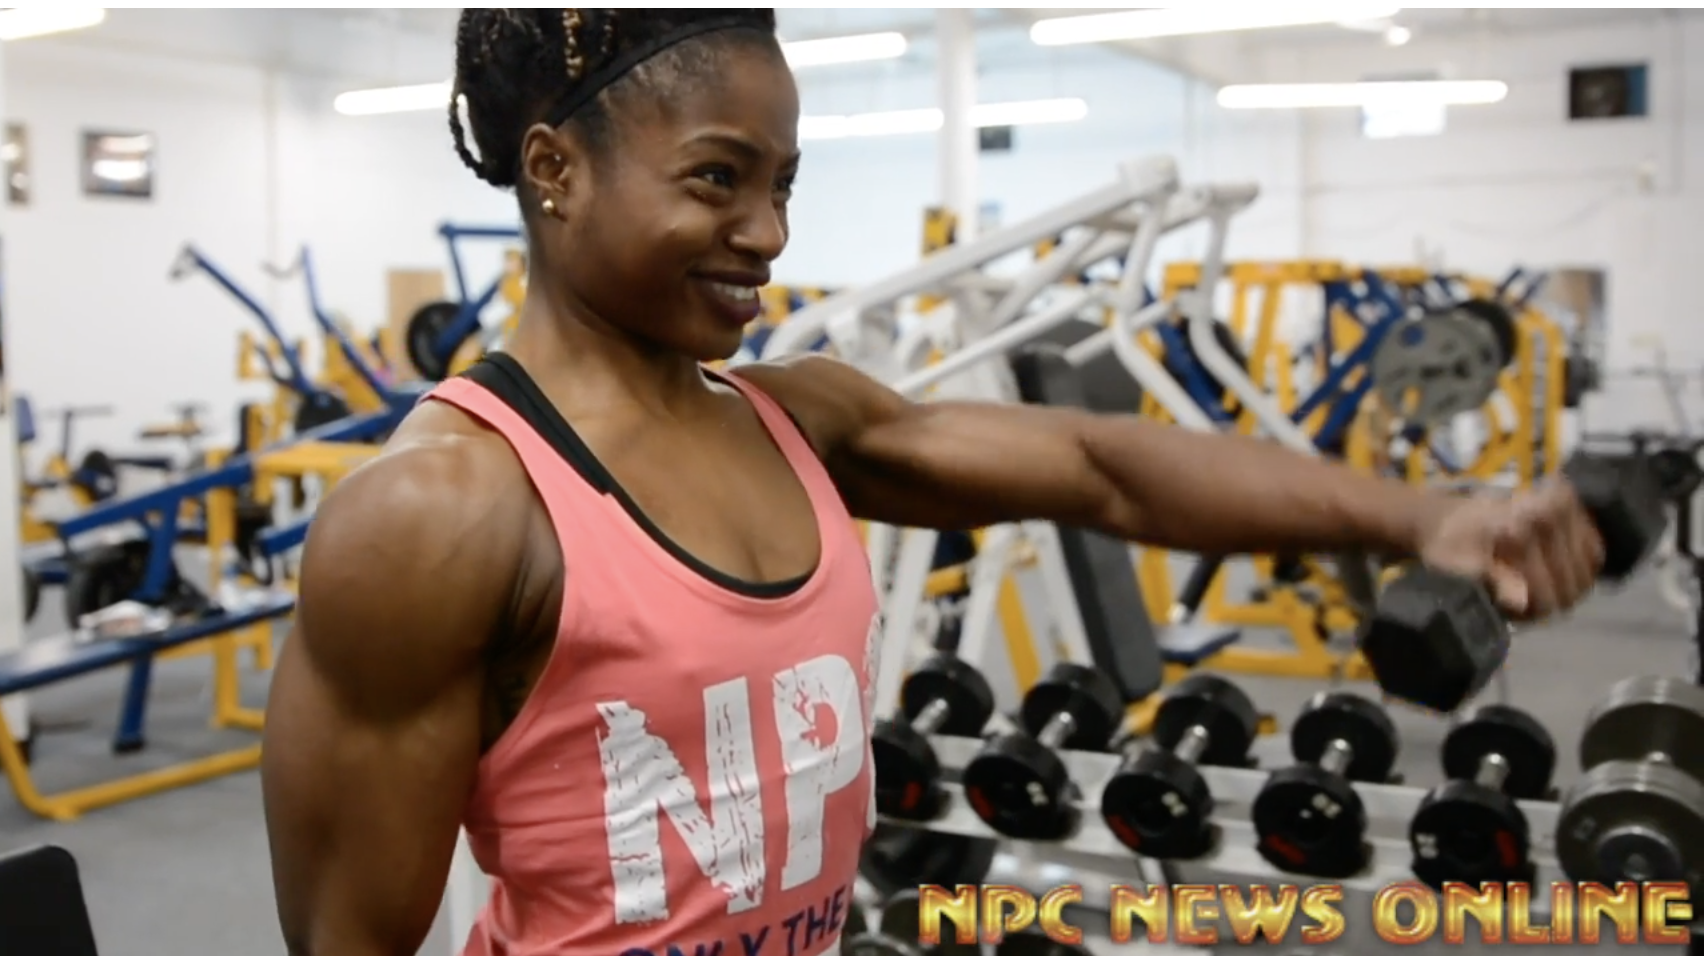 IFBB Figure Olympia ChampCydney GillonShoulder Workout Video: Road to the 2018 Arnold. Filmed By J.M. Manion At The NPC Photo Gym.